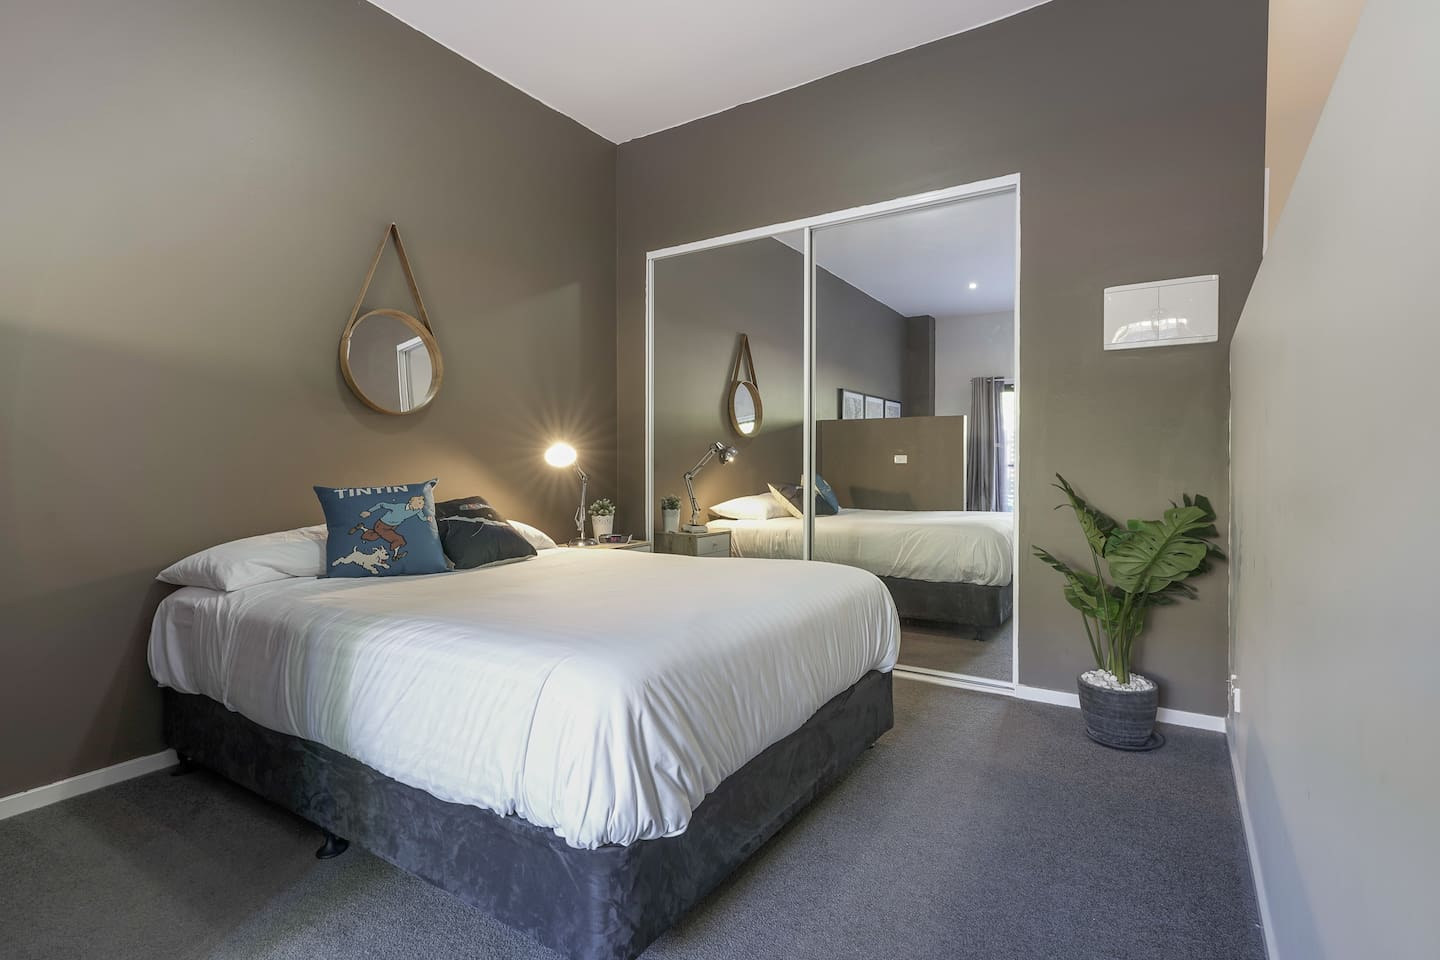 Very comfy bed with such a relaxing wall colors.